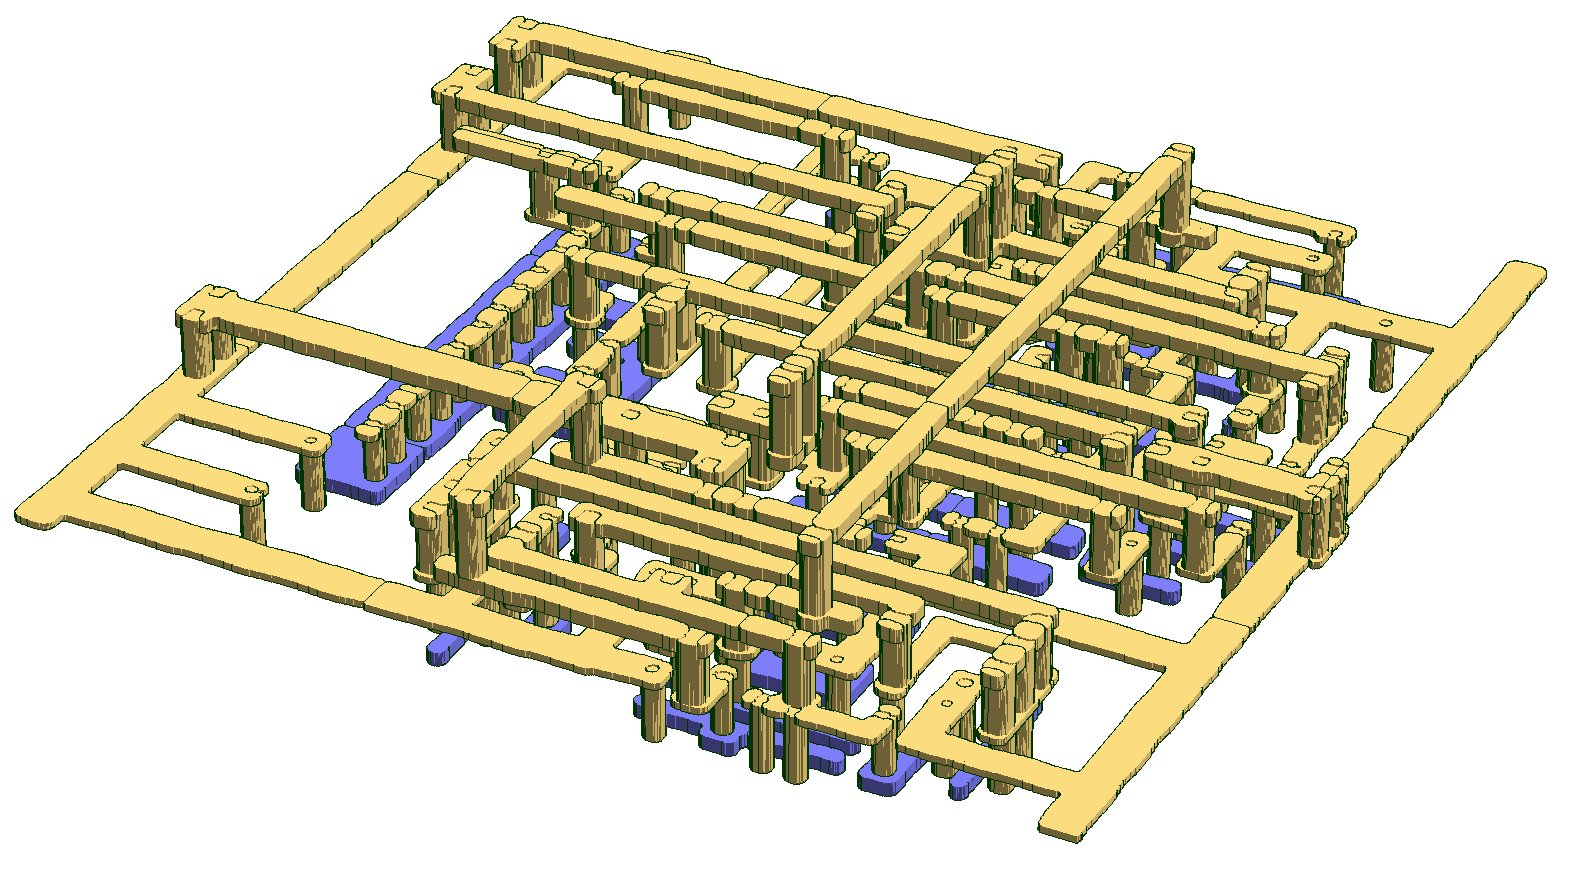 Simulated lithographic and other fabrication defects visible in a small standard cell.